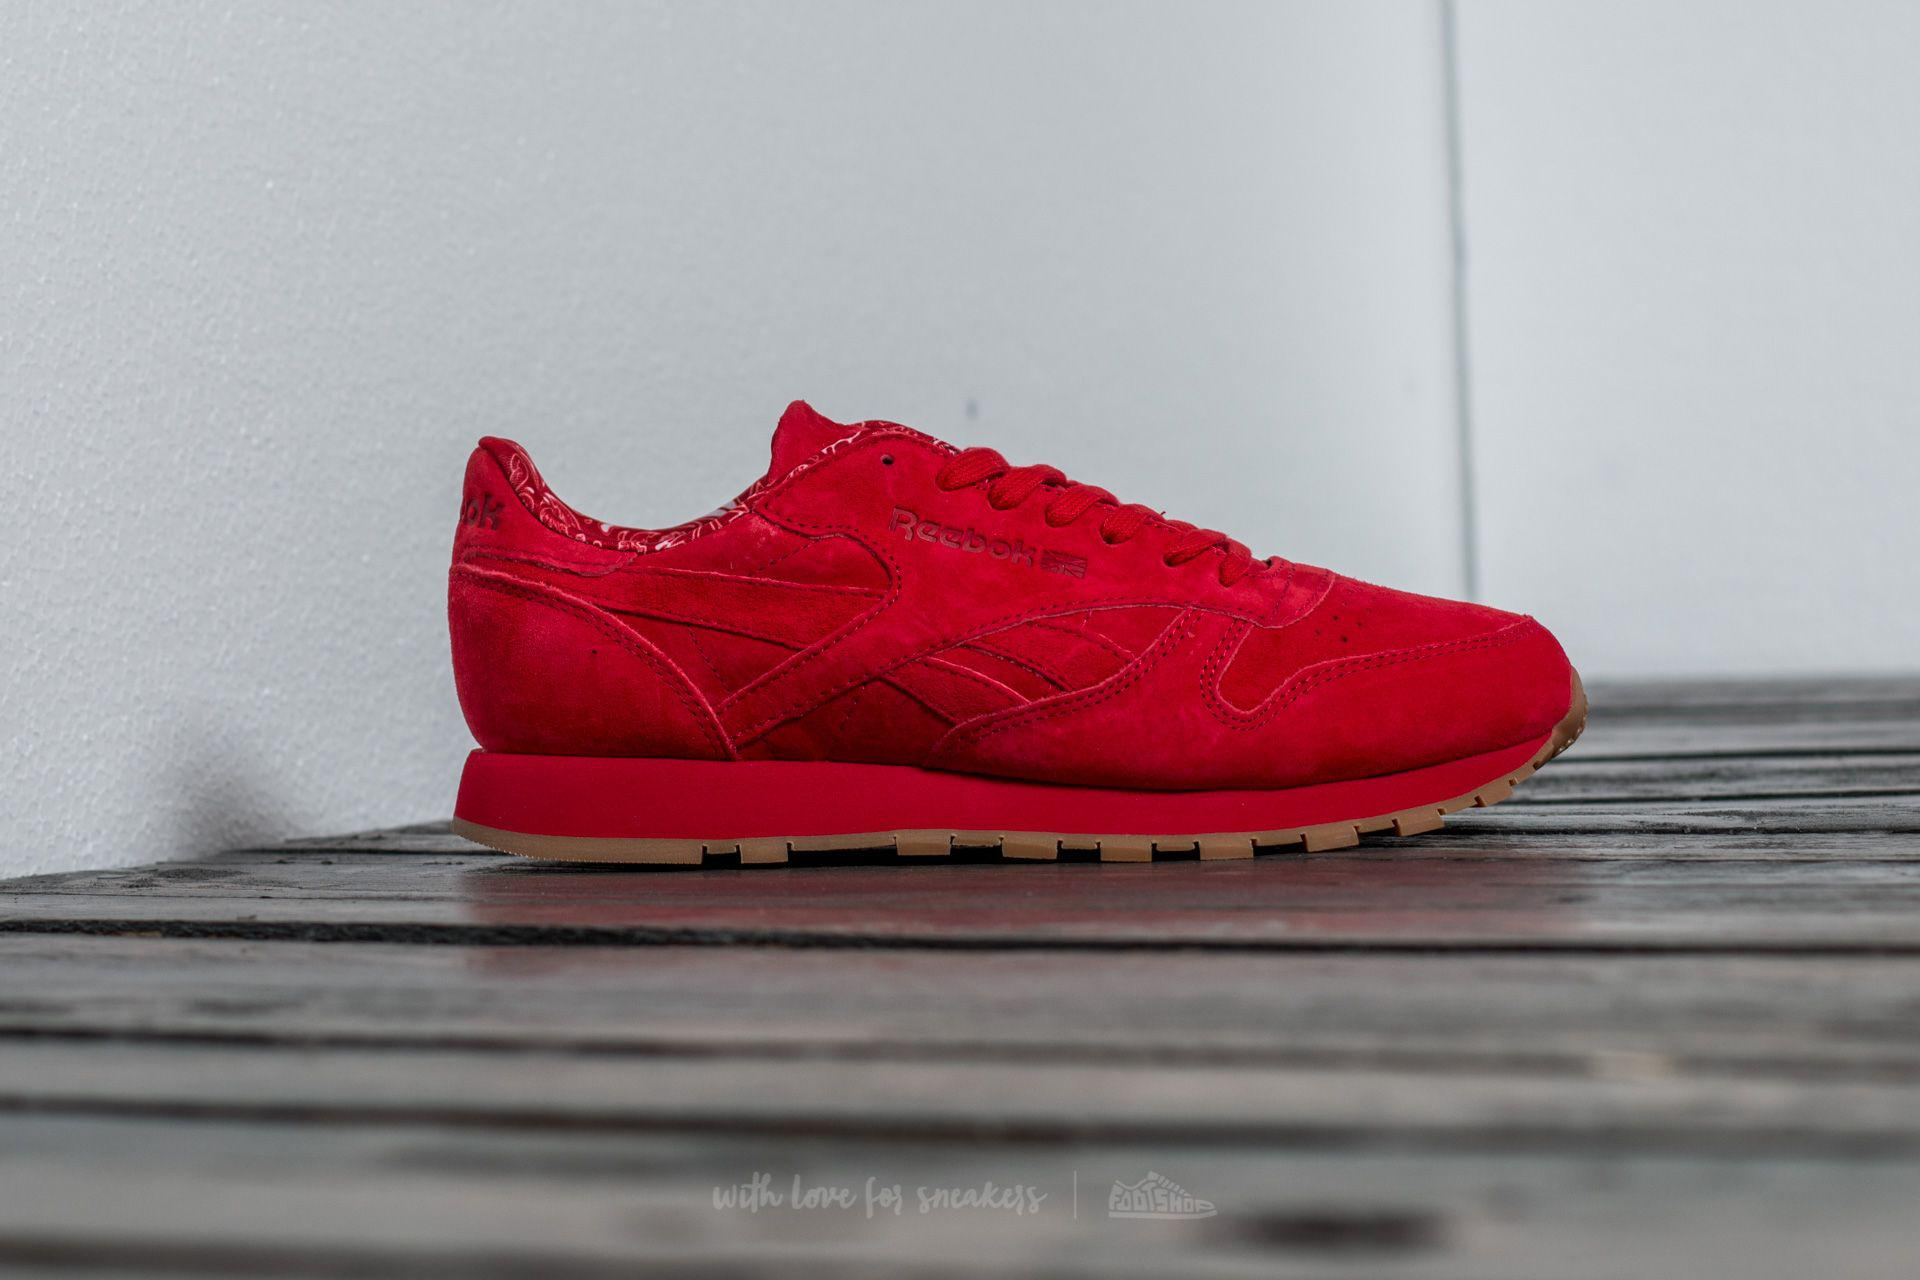 8b05c591d9c1 Lyst - Reebok Classic Leather Tdc Scarlet  White-gum in Red for Men